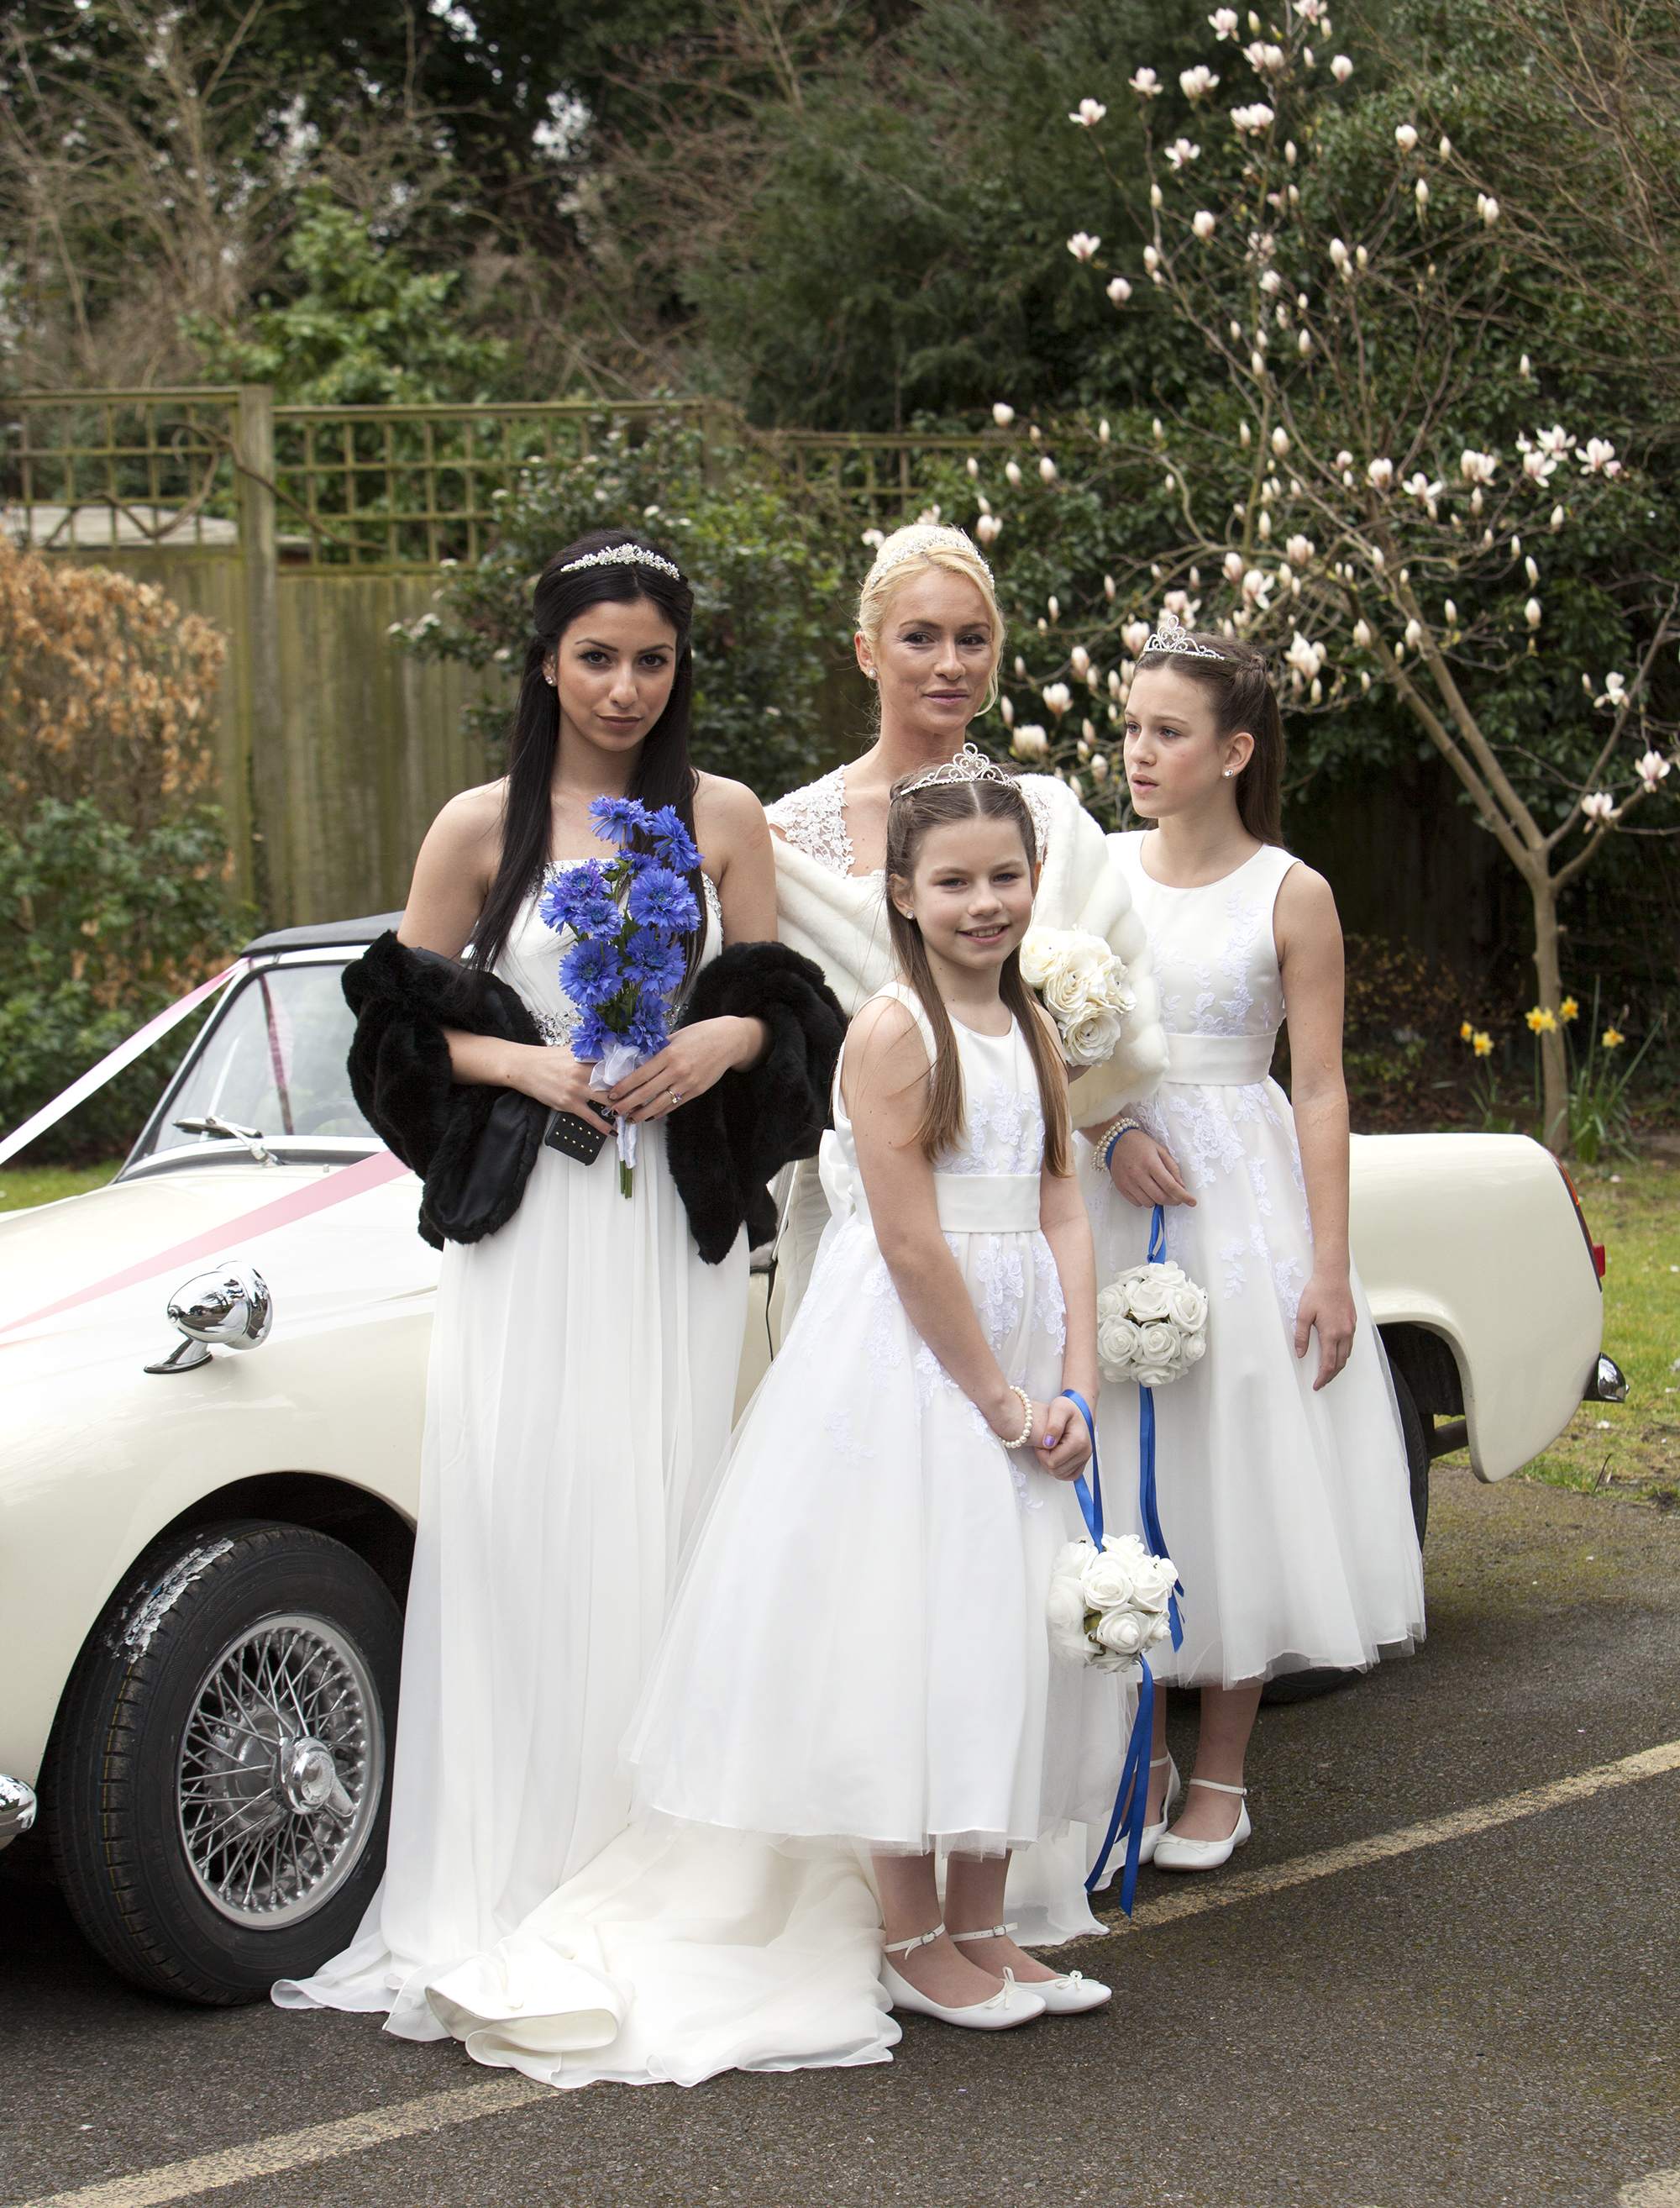 Danielle and bridesmaids